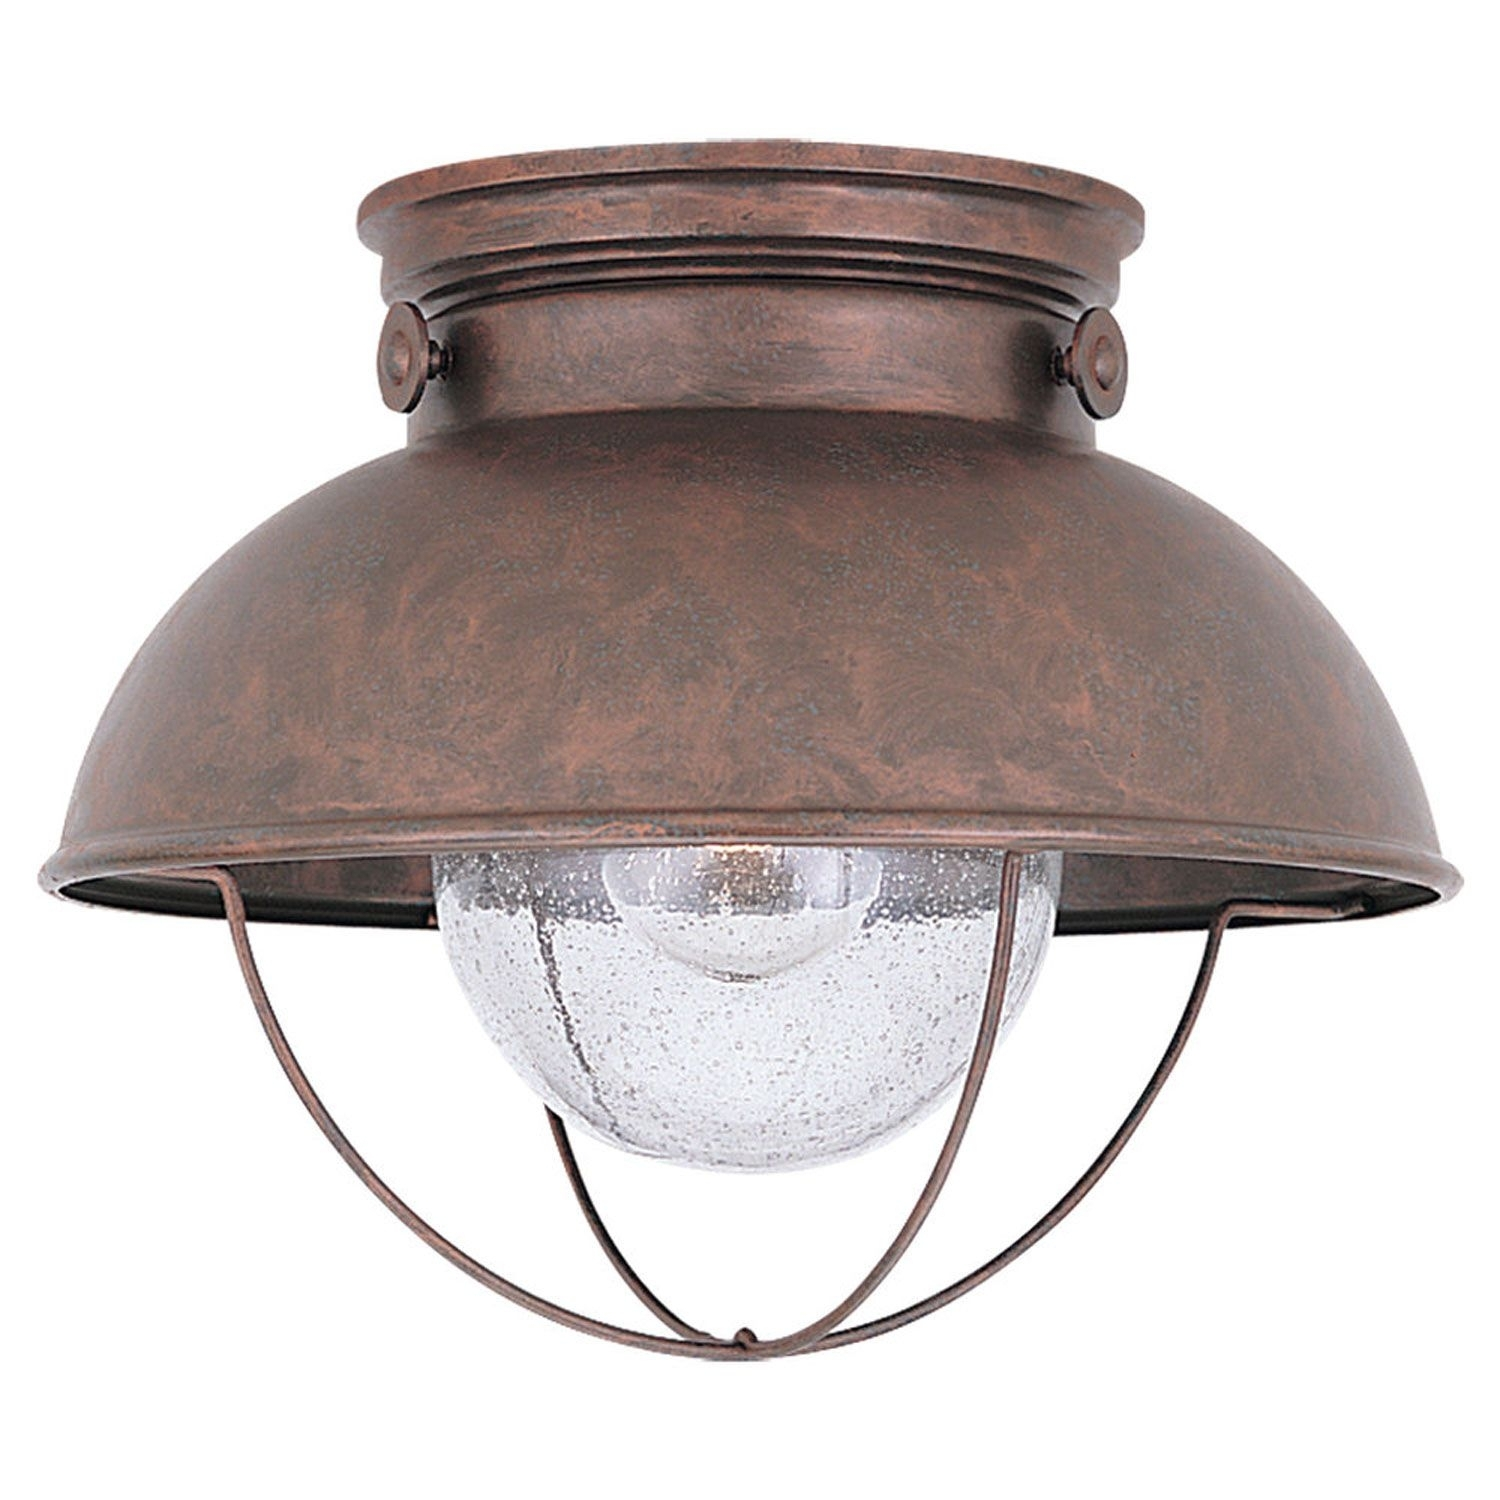 Sea Gull Lighting Sebring Weathered Copper Led Outdoor Ceiling Flush Regarding Outdoor Ceiling Mount Porch Lights (#14 of 15)